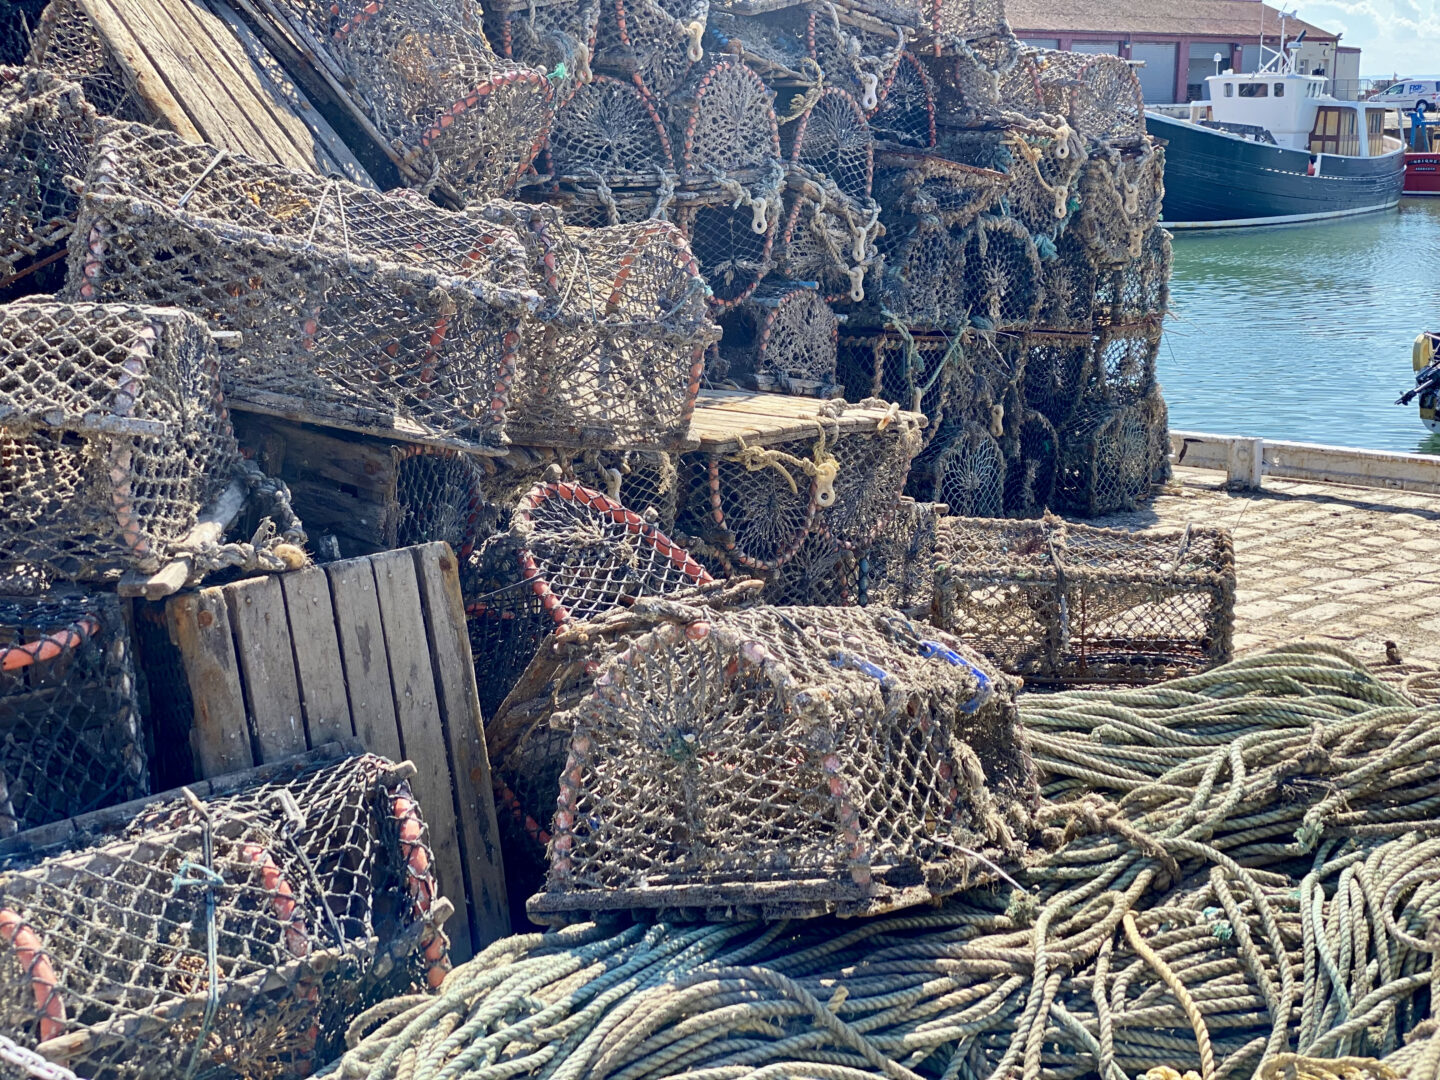 Fishing baskets at the Arbroath Harbour